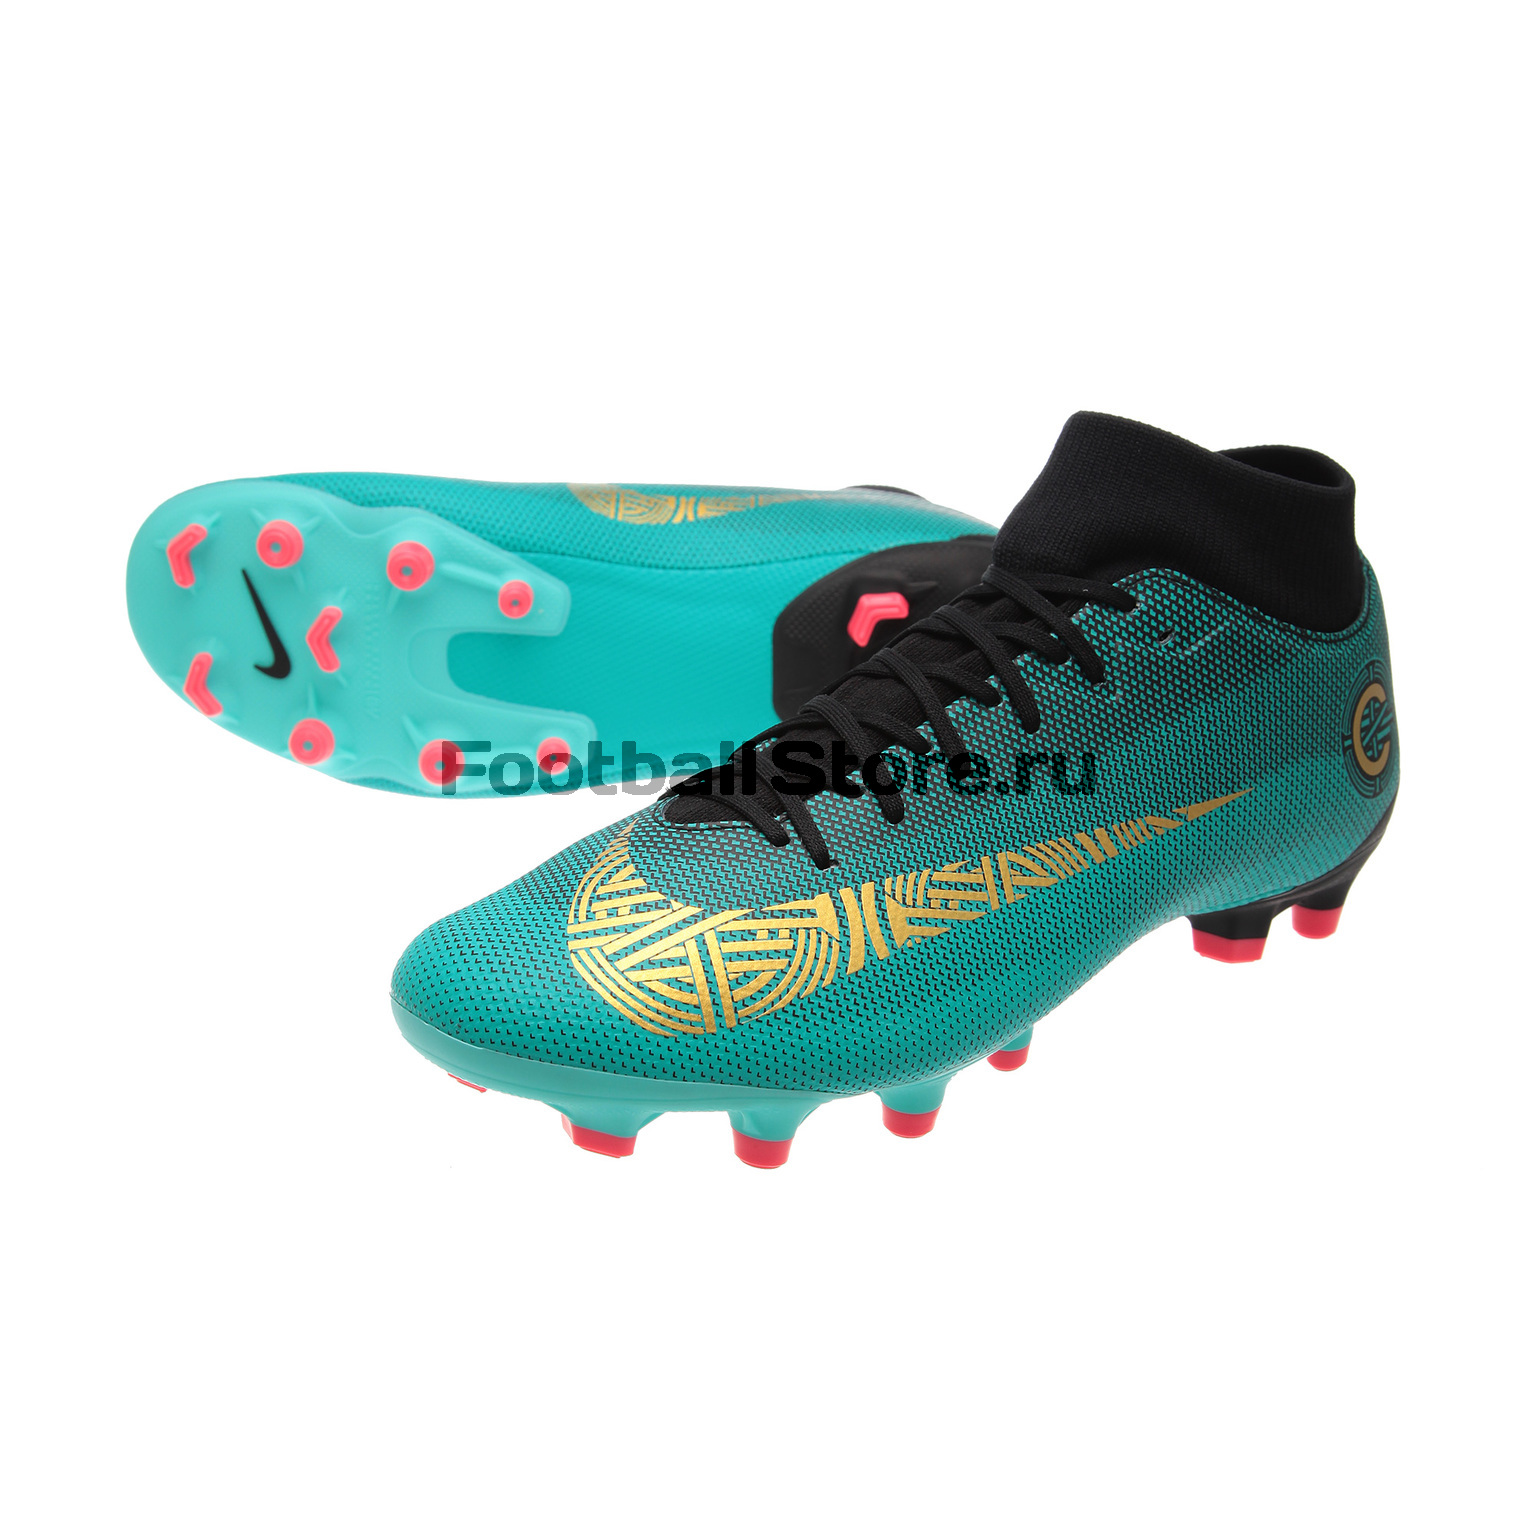 Бутсы Nike Superfly 6 Academy CR7 FG/MG AJ3541-390 бутсы nike superfly academy gs cr7 jr fg mg aj3111 390